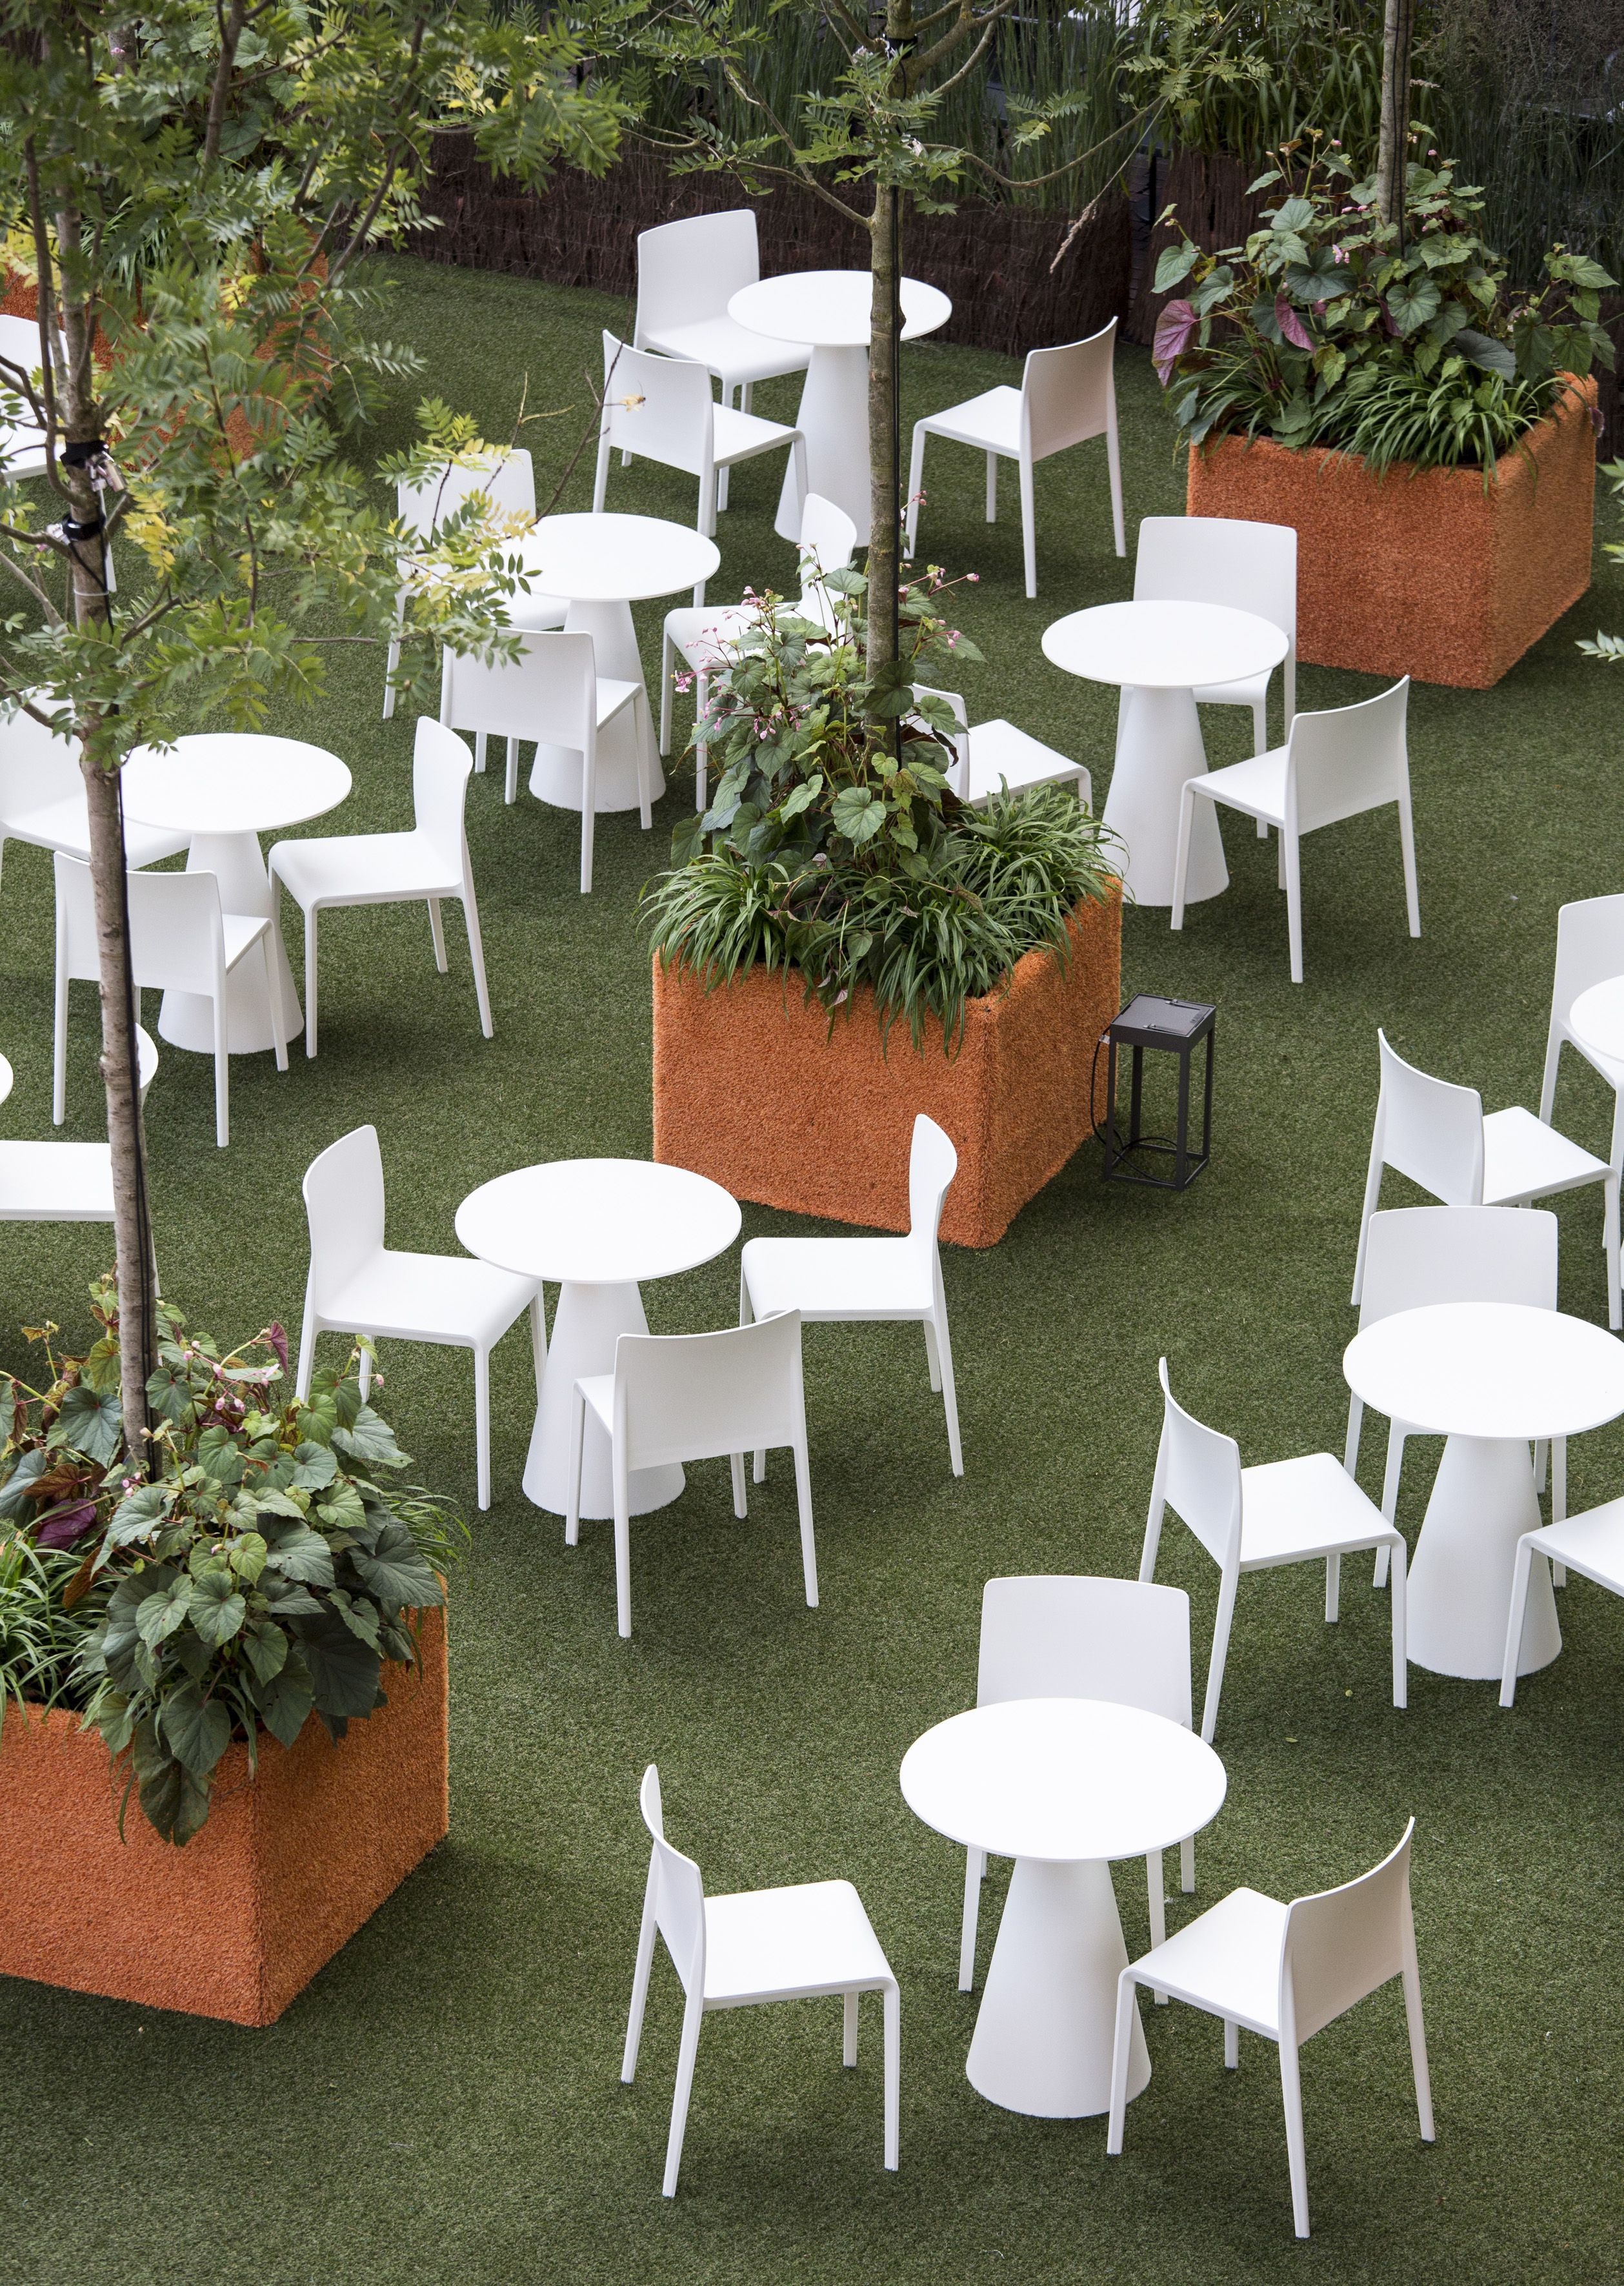 White chair and table for a new garden's ispiration #pedrali #outdoor